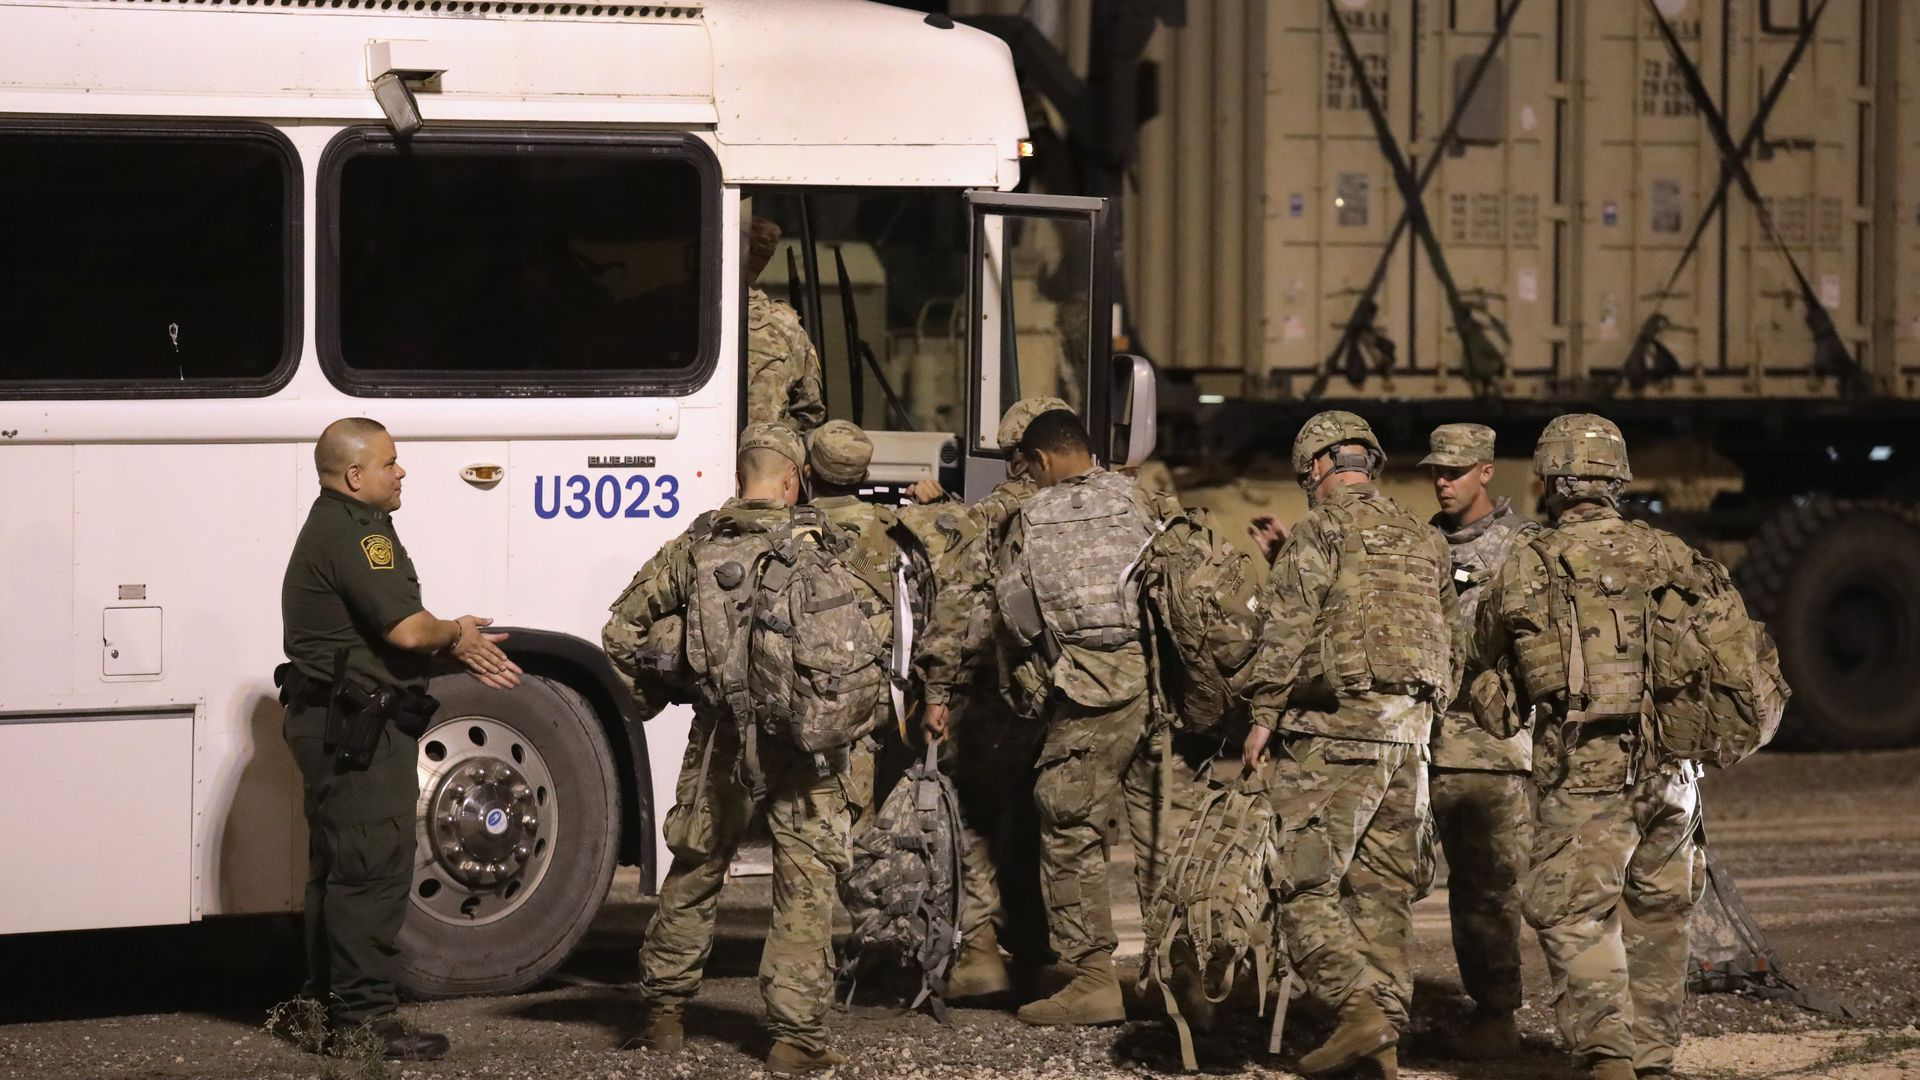 Troops at the border getting into a bus